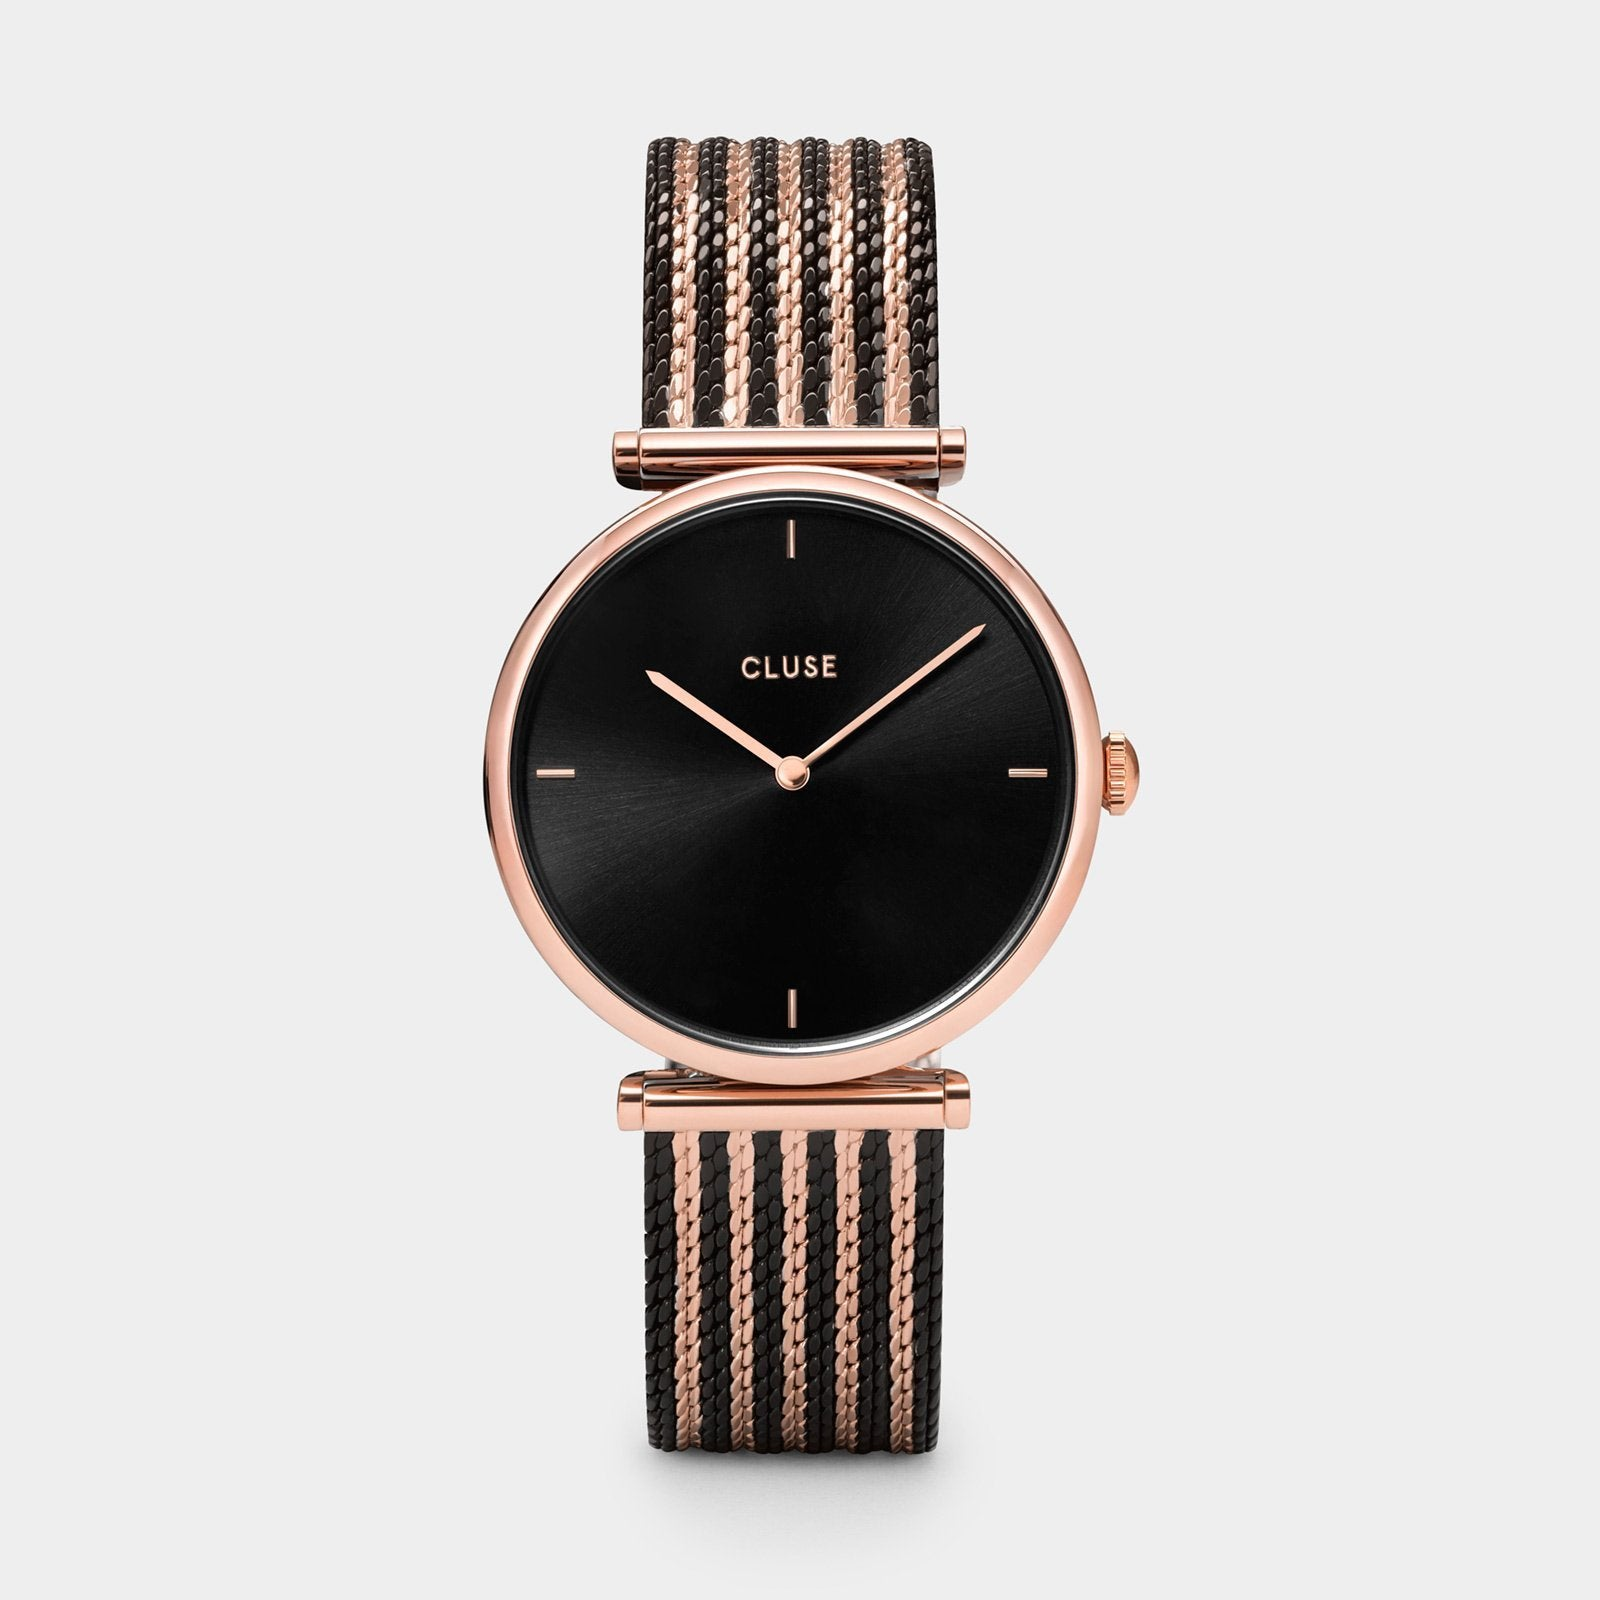 CLUSE Triomphe Mesh Rose Gold Black/Black/Rose gold CW0101208005 - watch